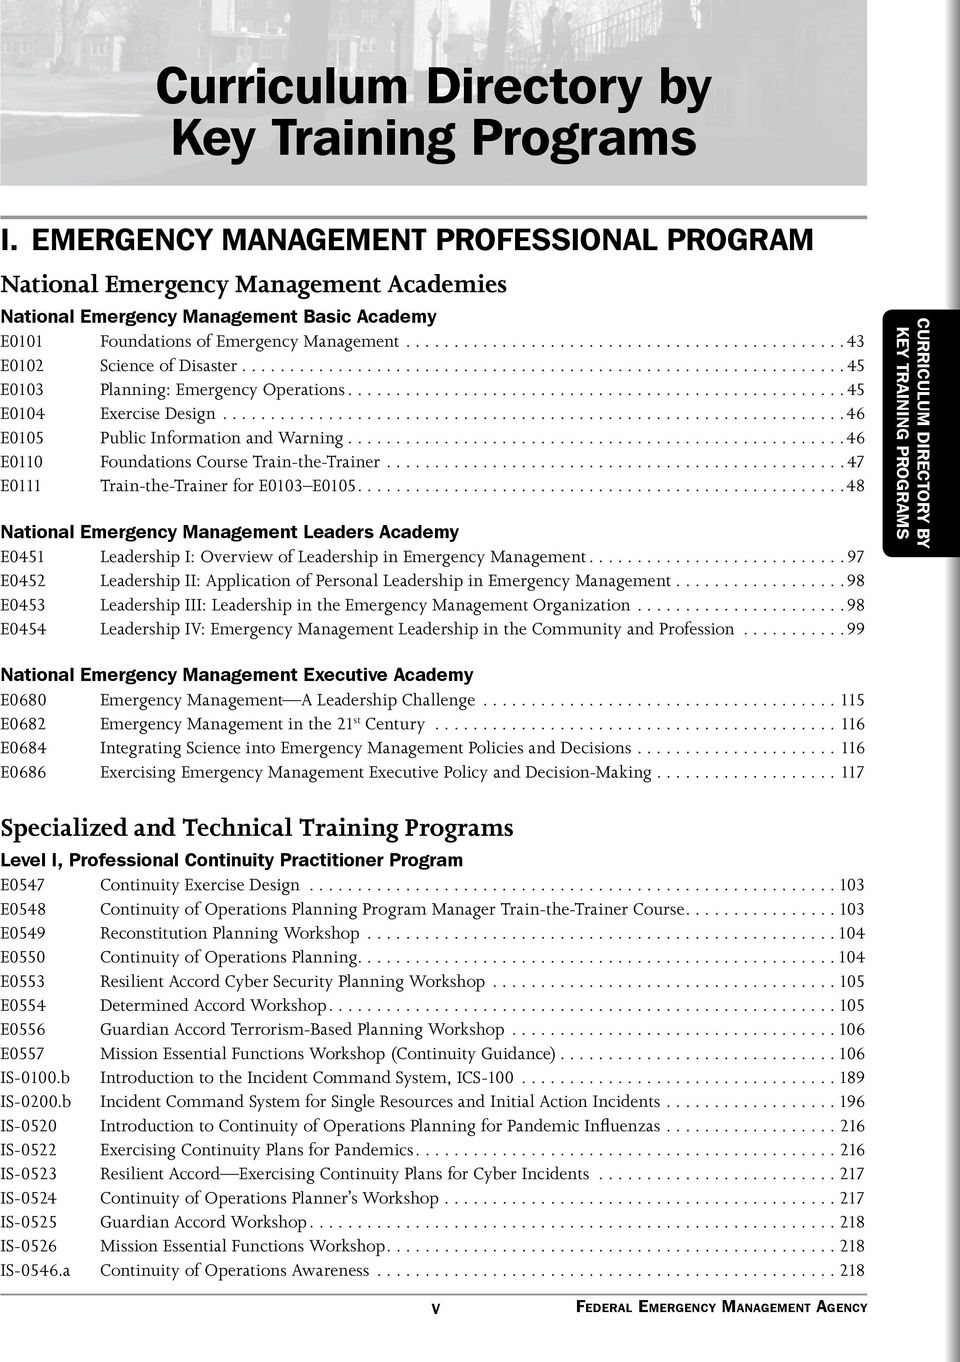 ..45 E0103 Planning: Emergency Operations...45 E0104 Exercise Design...46 E0105 Public Information and Warning...46 E0110 Foundations Course Train-the-Trainer.